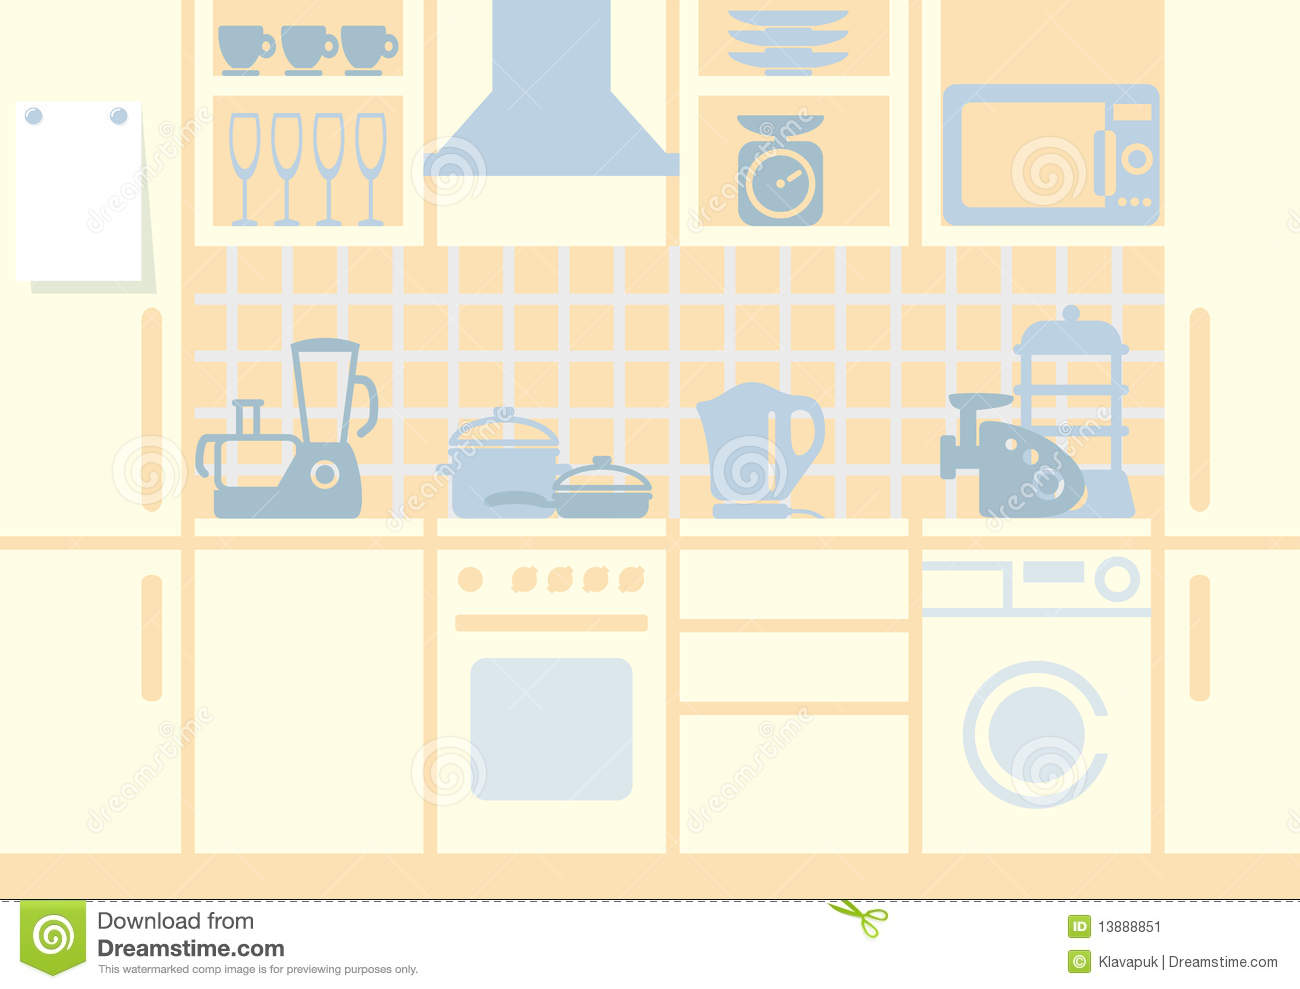 kitchen food preparation table diy outdoor kitchens on a budget background stock image - image: 13888851